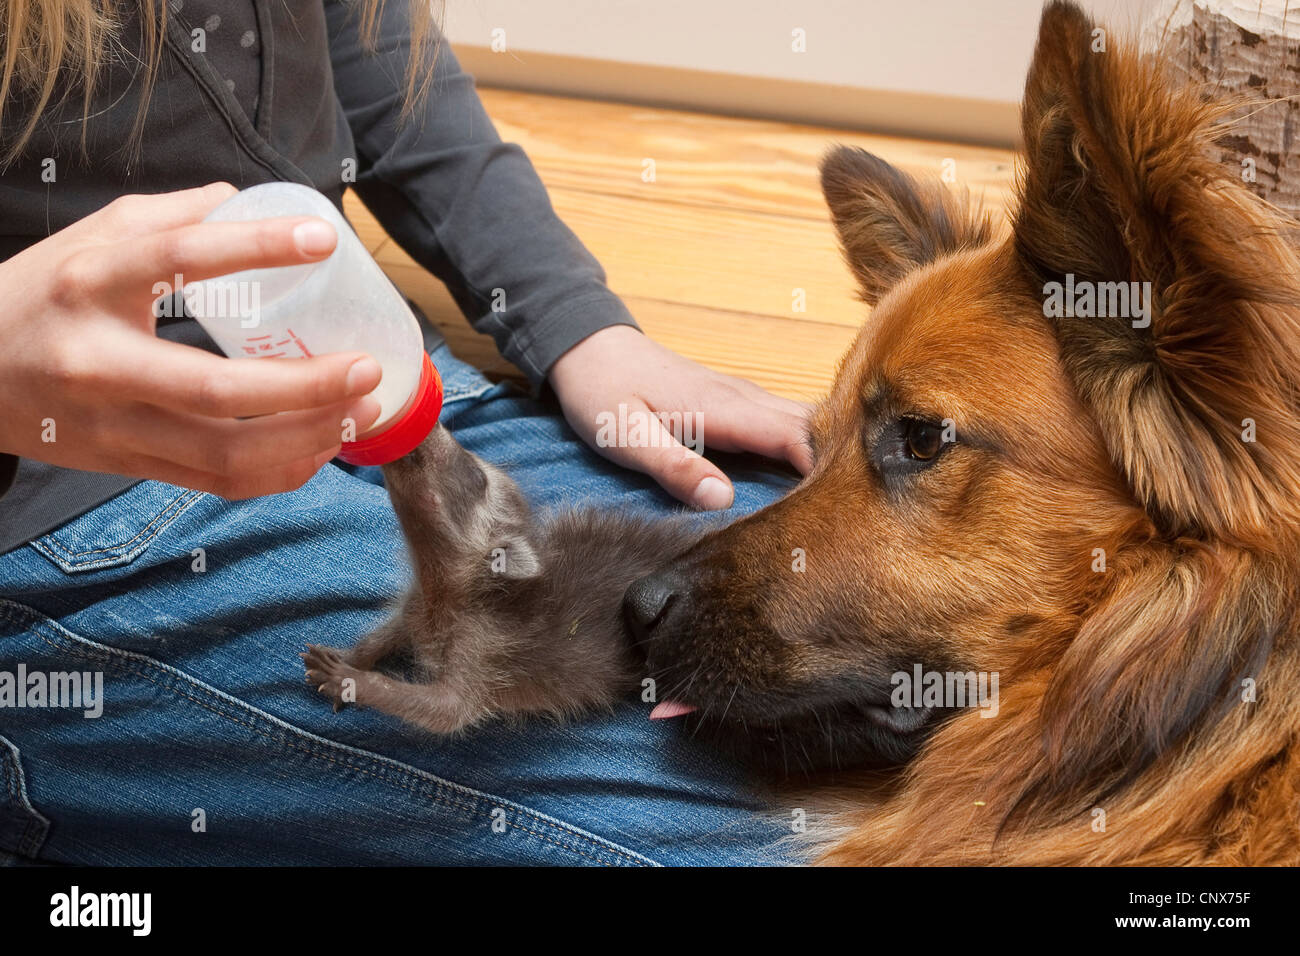 common raccoon (Procyon lotor), pup rearing by human, dog licking it, Germany - Stock Image